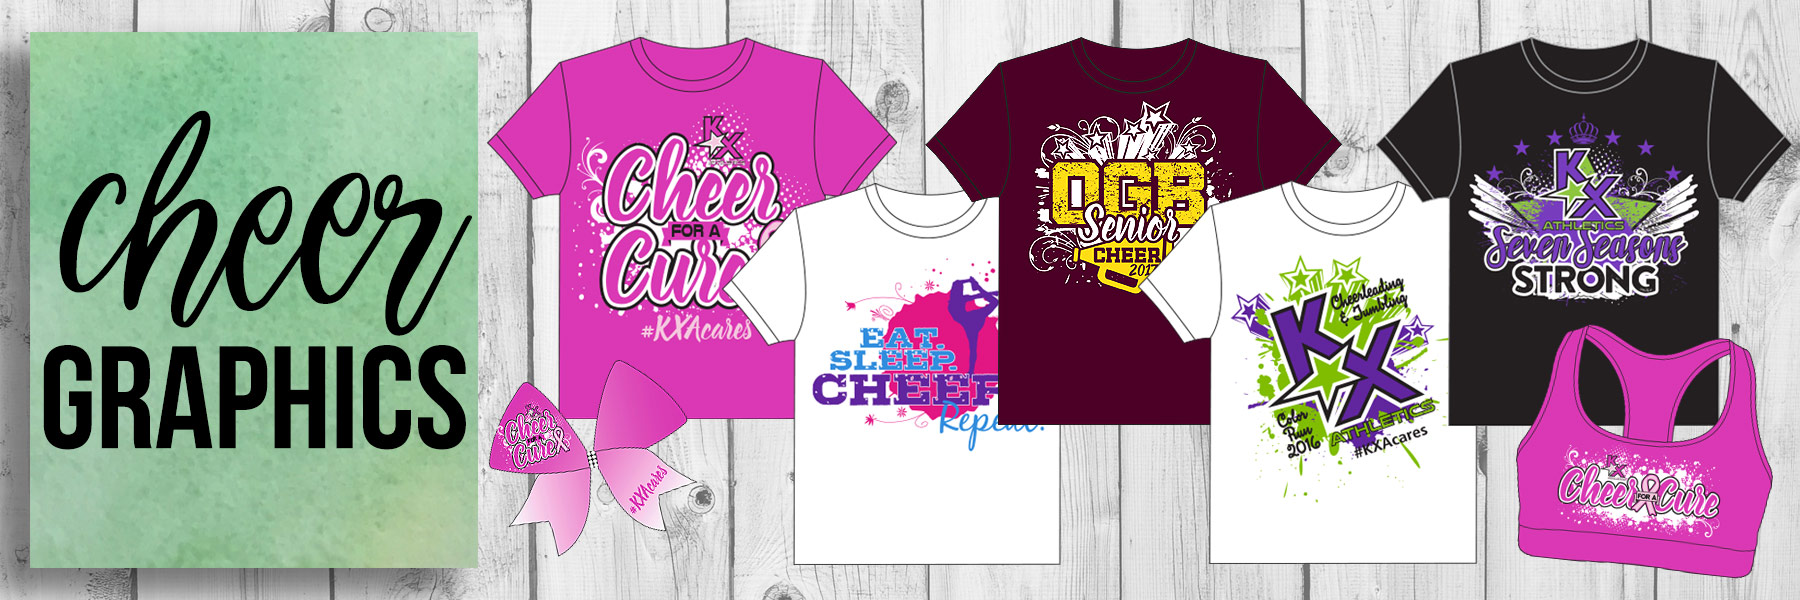 Lucky Girl Cheer Bows - Cheer Graphics